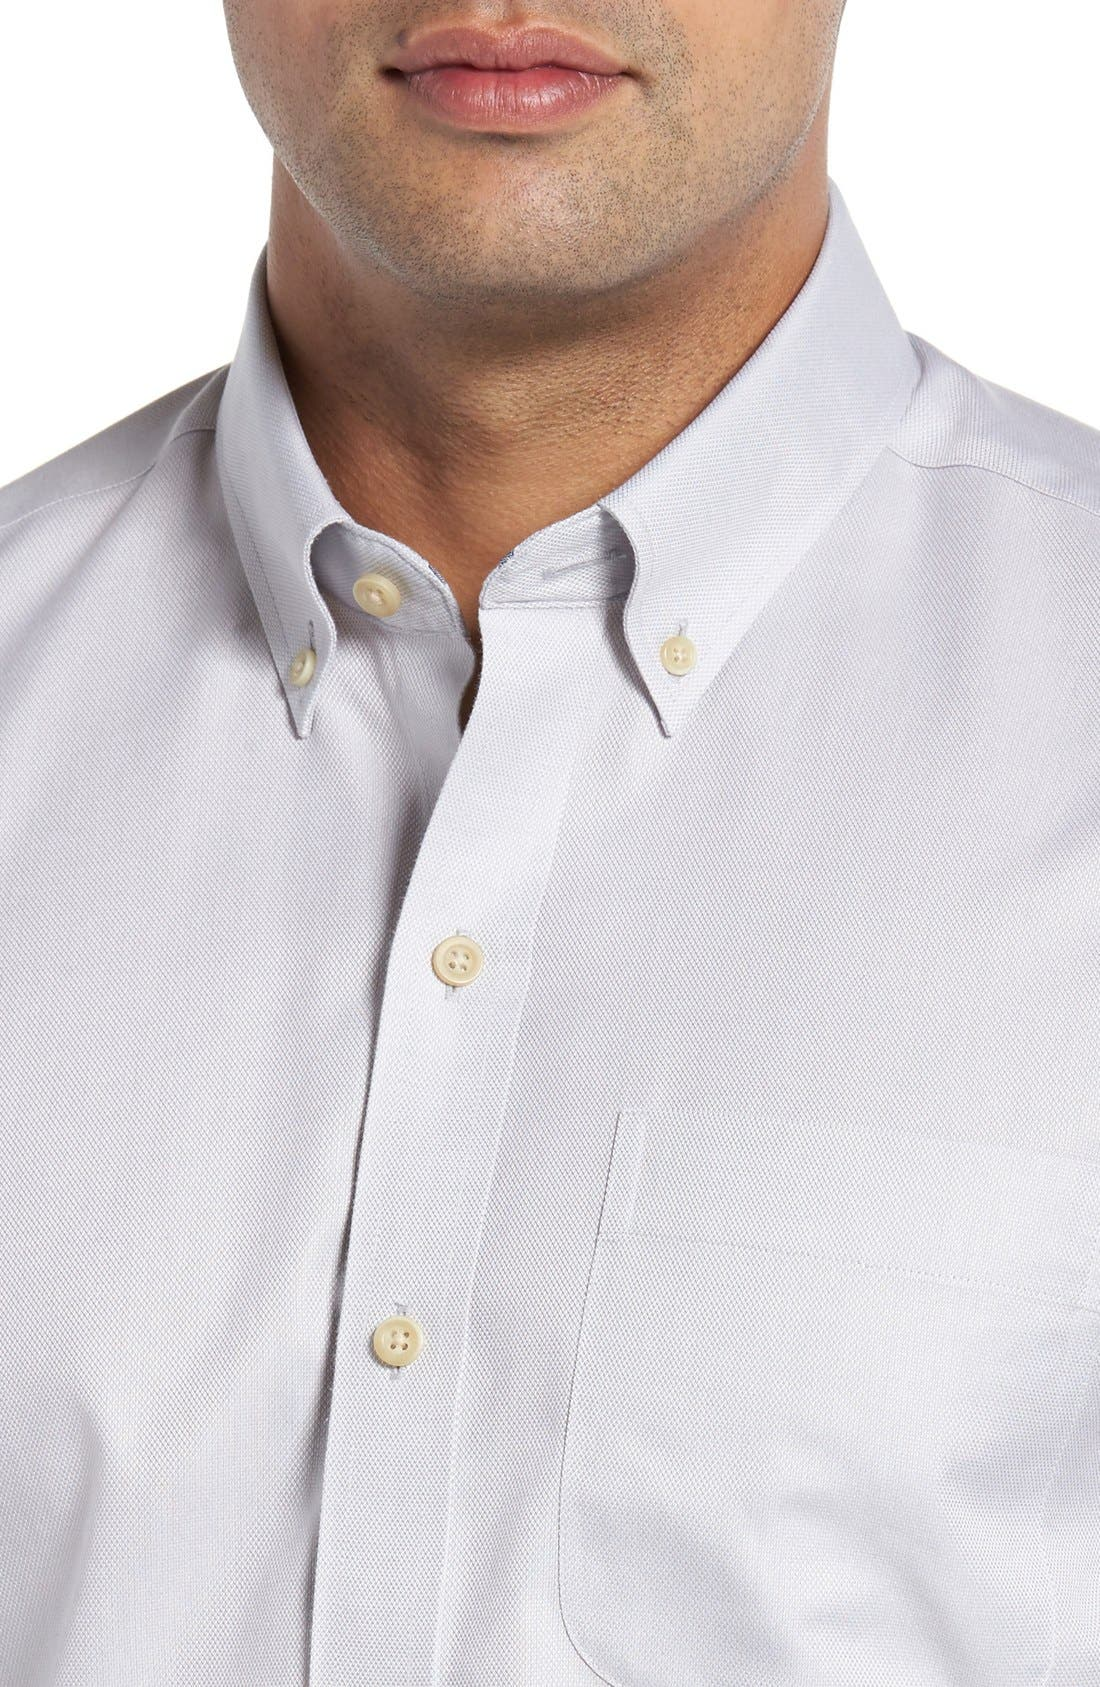 San Juan Classic Fit Wrinkle Free Solid Sport Shirt,                             Alternate thumbnail 4, color,                             054